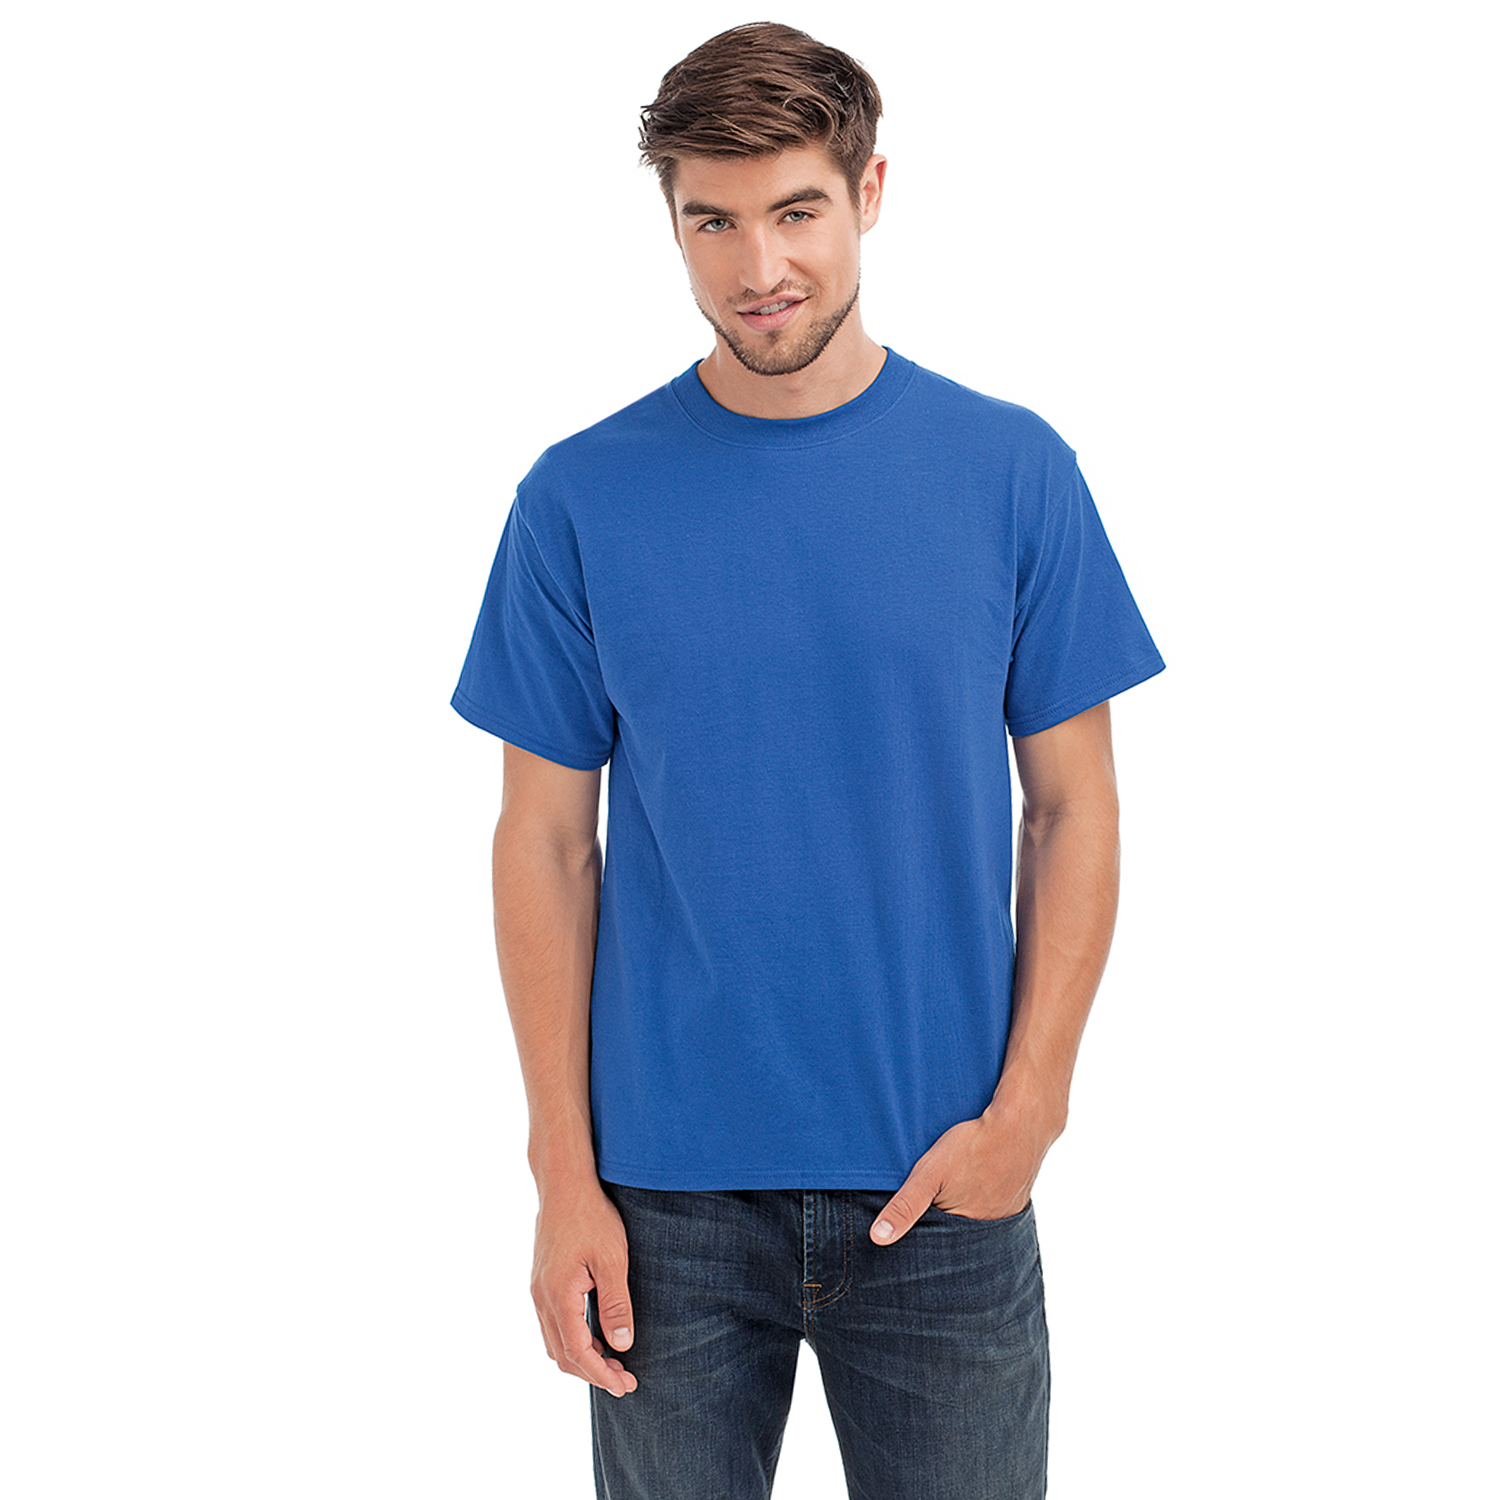 Hanes beefy t mens cotton crewneck tagless short sleeve t for Hanes 5180 beefy t t shirt